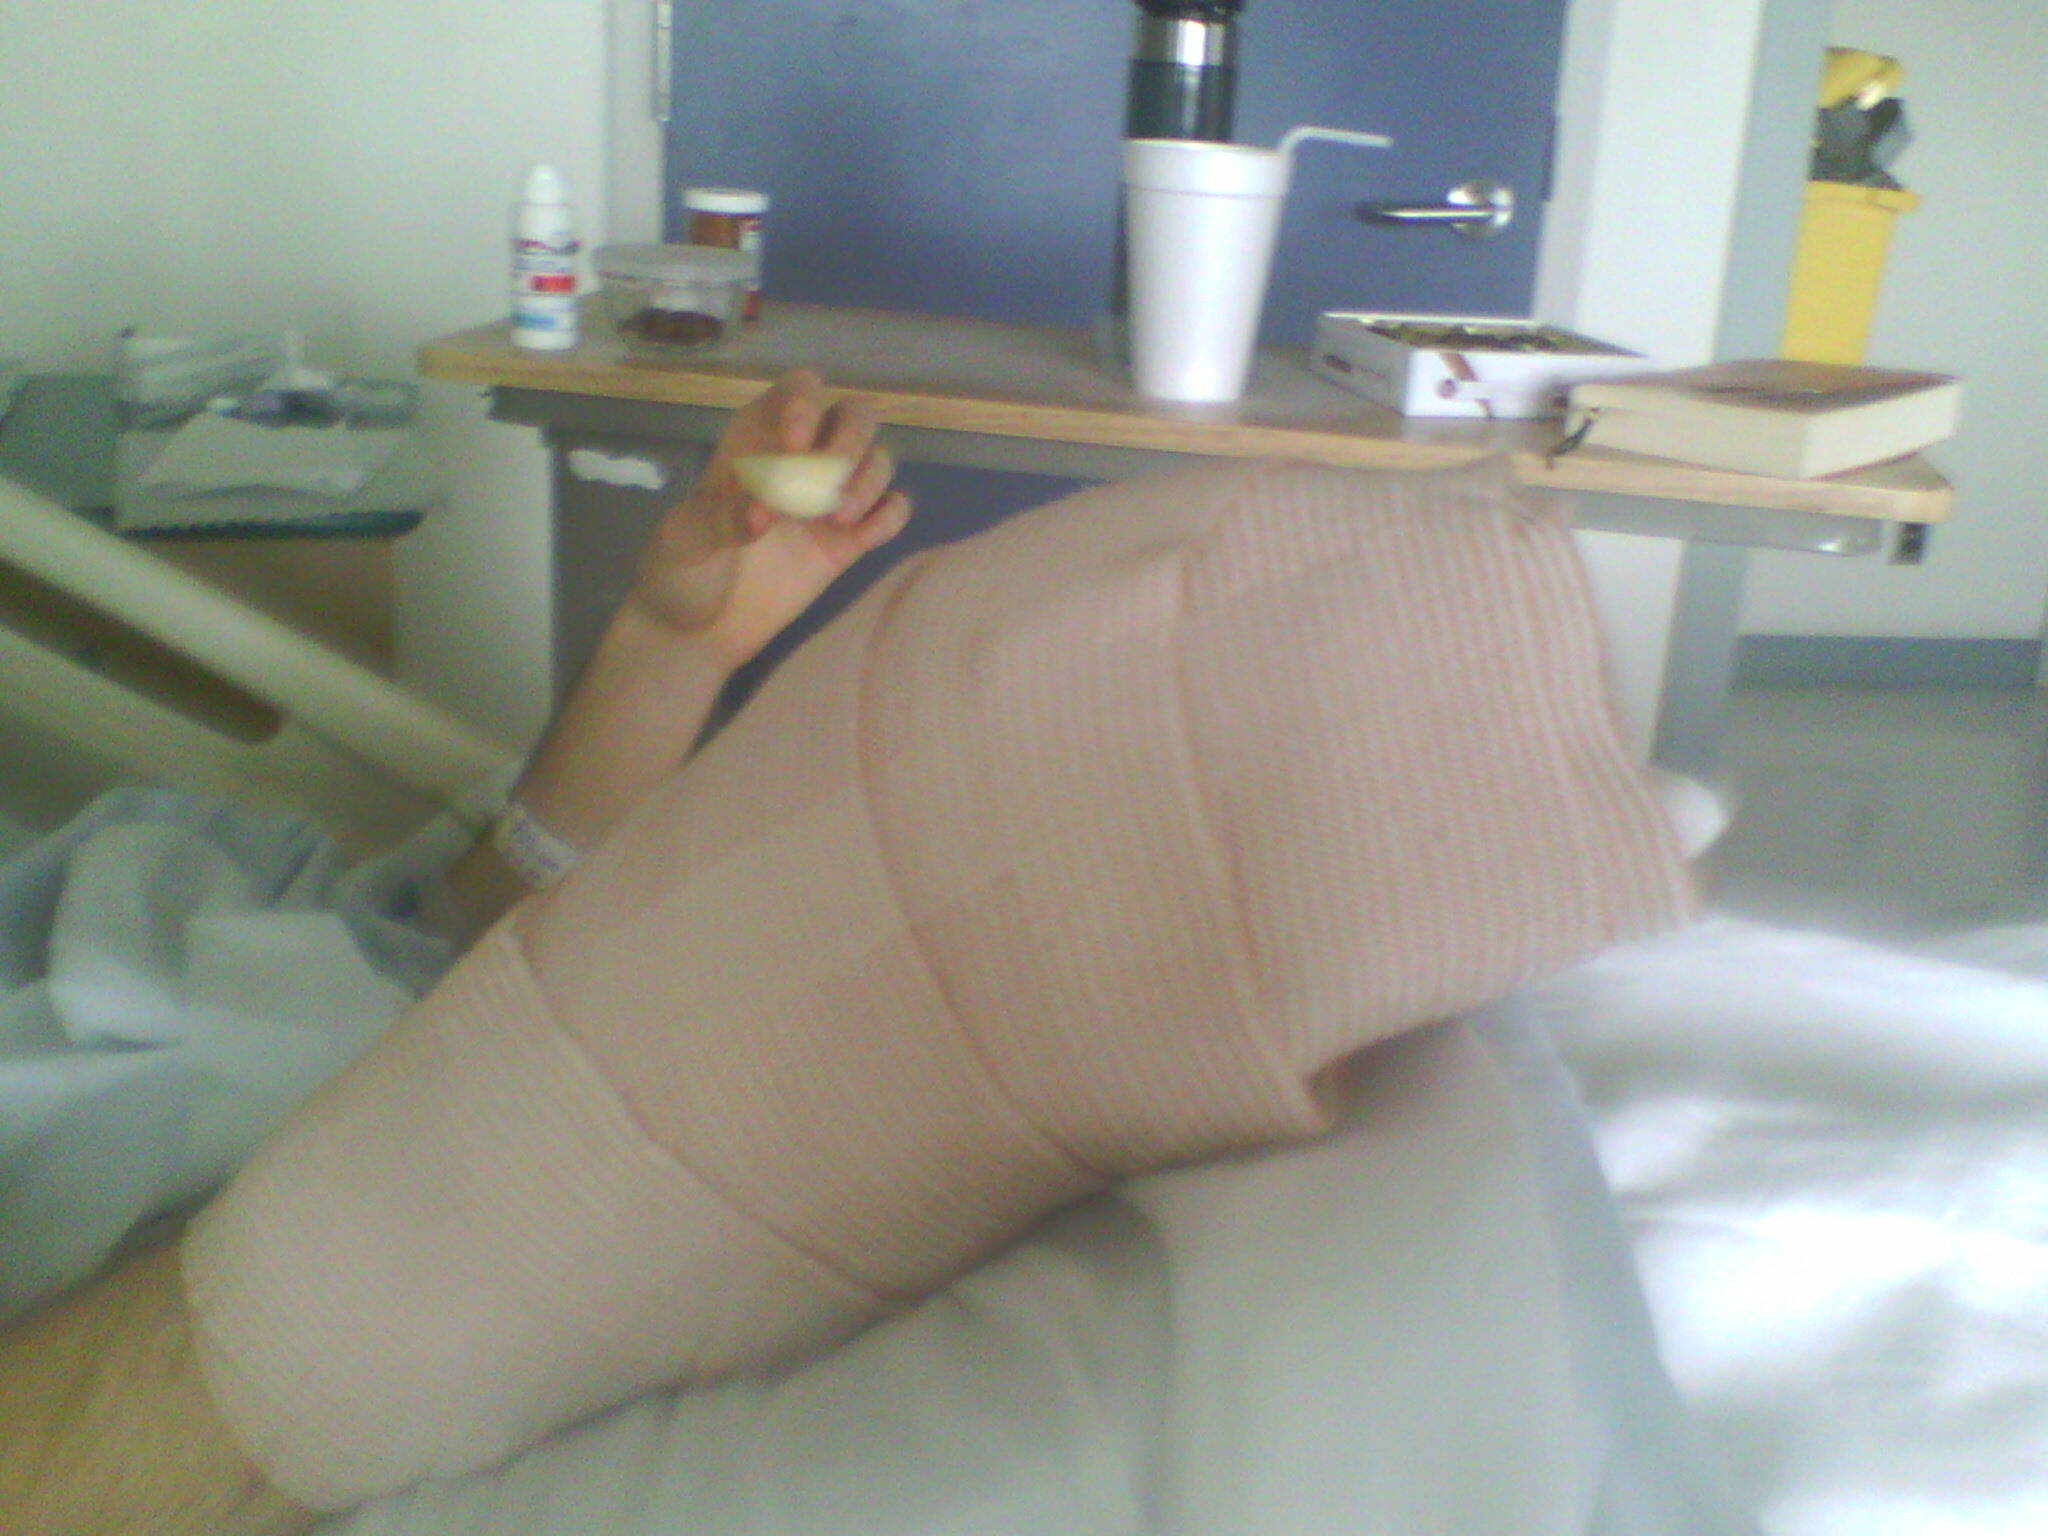 The day of my skin graft